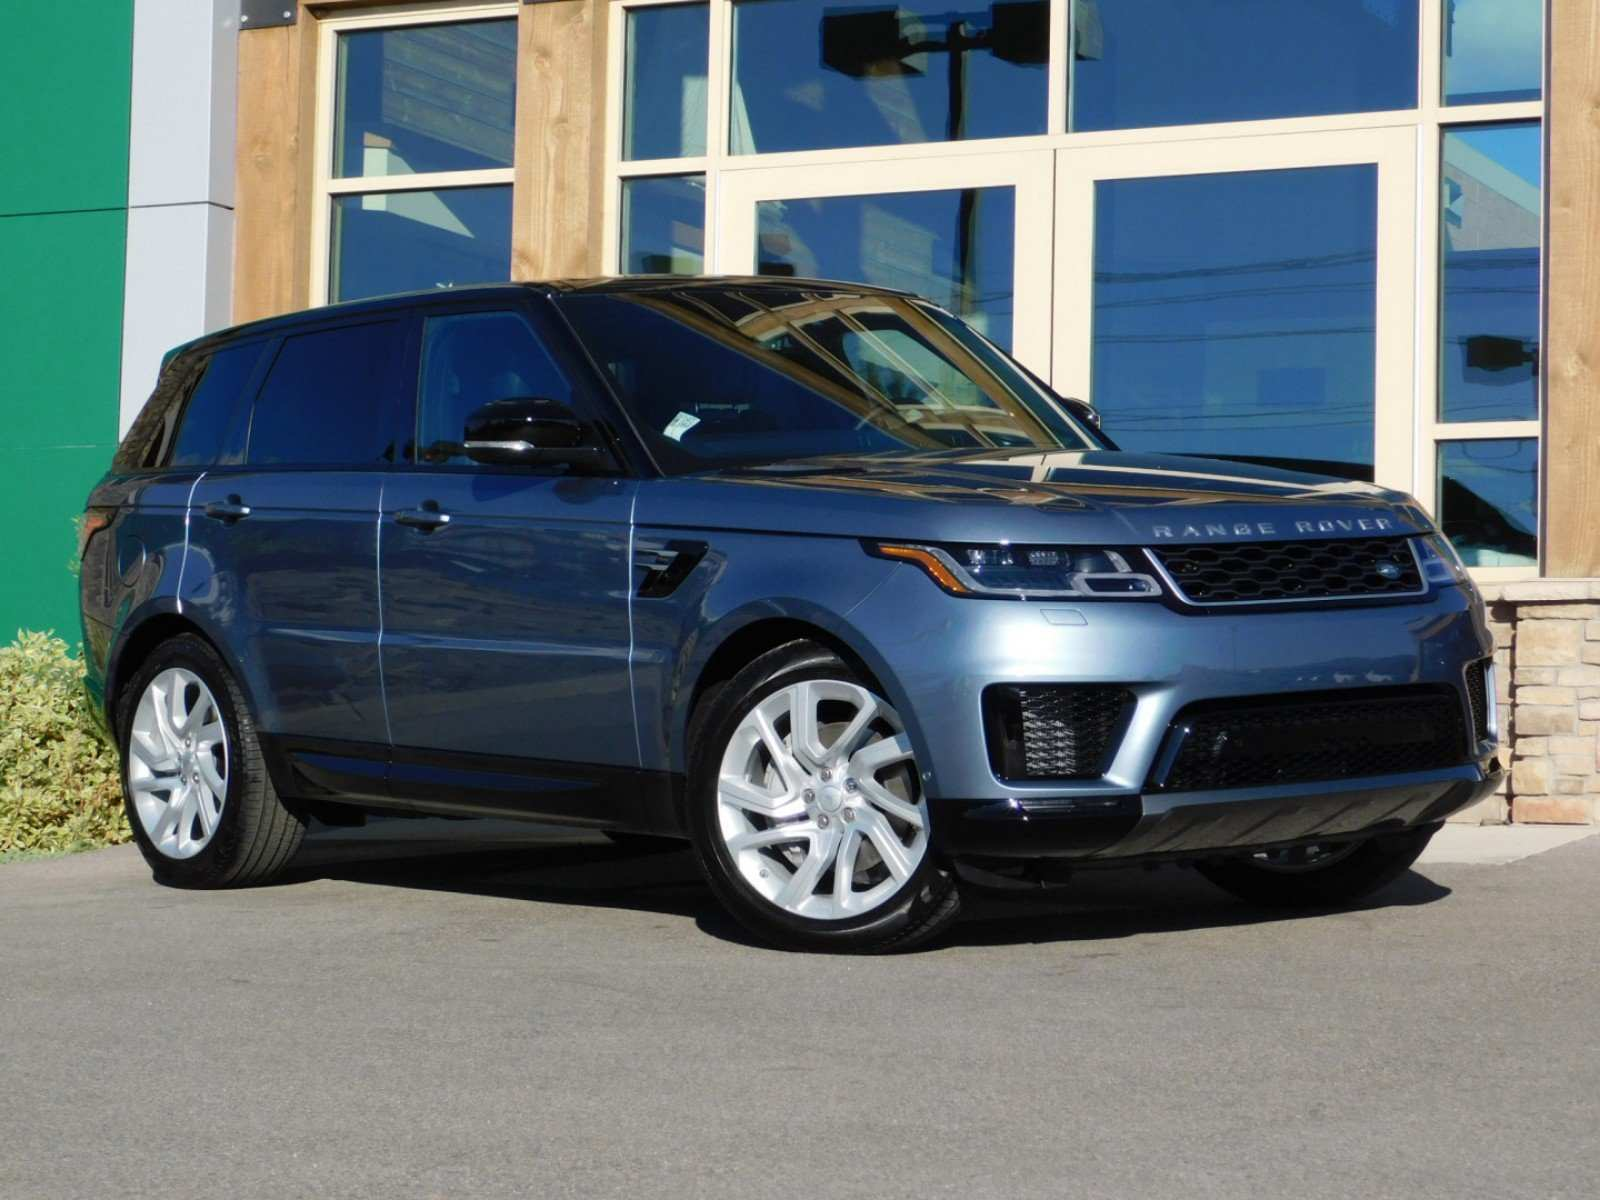 16 Best Review 2019 Land Rover Range Rover Sport Speed Test for 2019 Land Rover Range Rover Sport